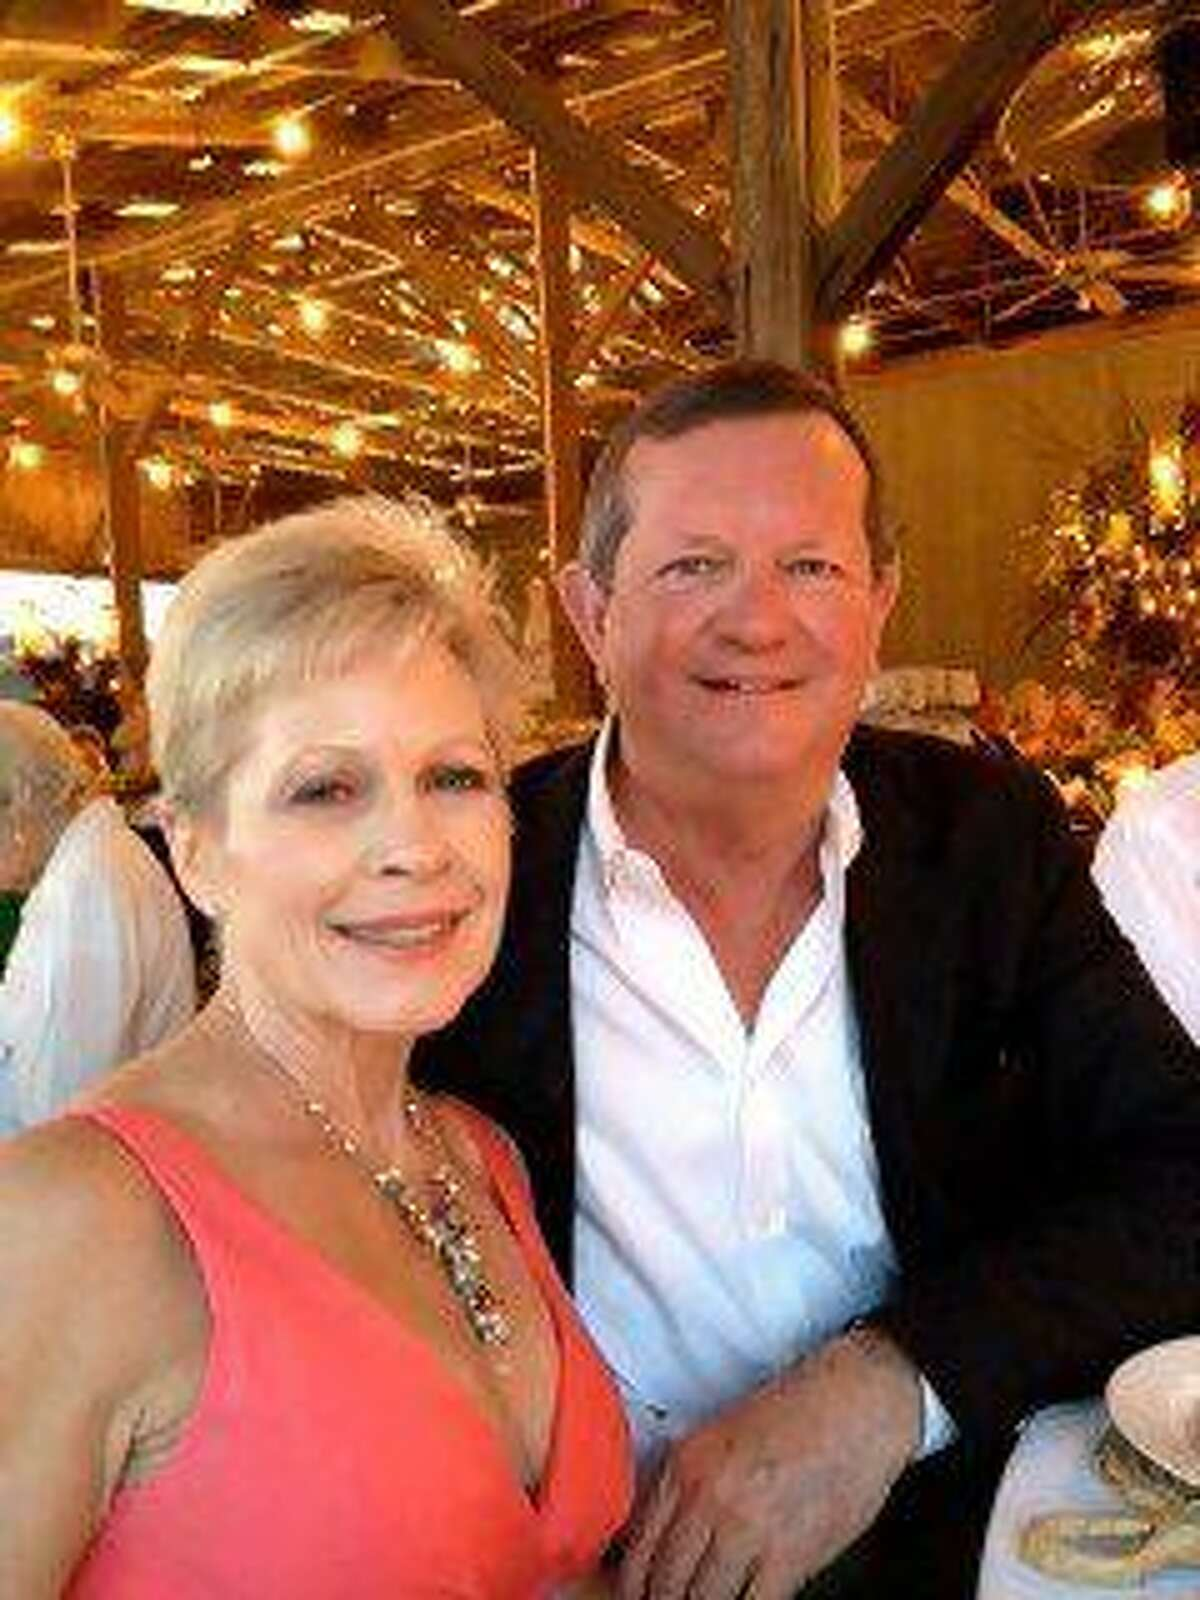 Ronnie Pace is a two-time male breast cancer survivor and has joined the board of directors at The Rose, which is a nonprofit that offers breast cancer screenings and diagnostics services to the southeast Texas region. His wife Judy, at left, helped him fight the disease.